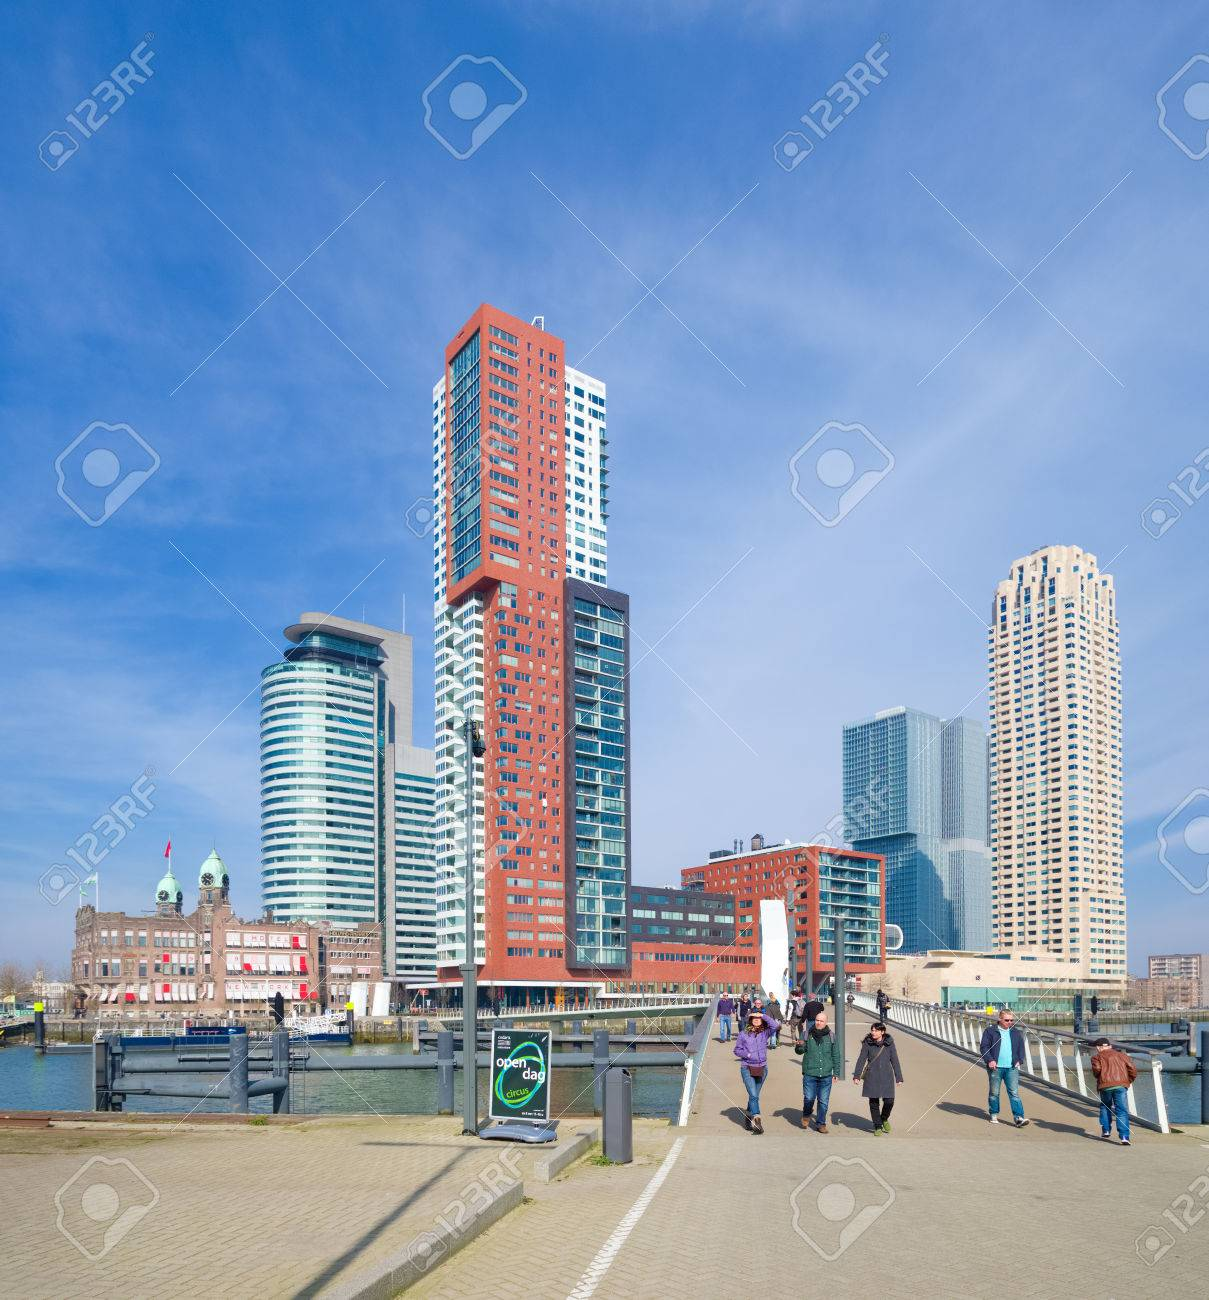 Modern Skyline Of Rotterdam. Rotterdam Is The Only City In The Netherlands  With A Real